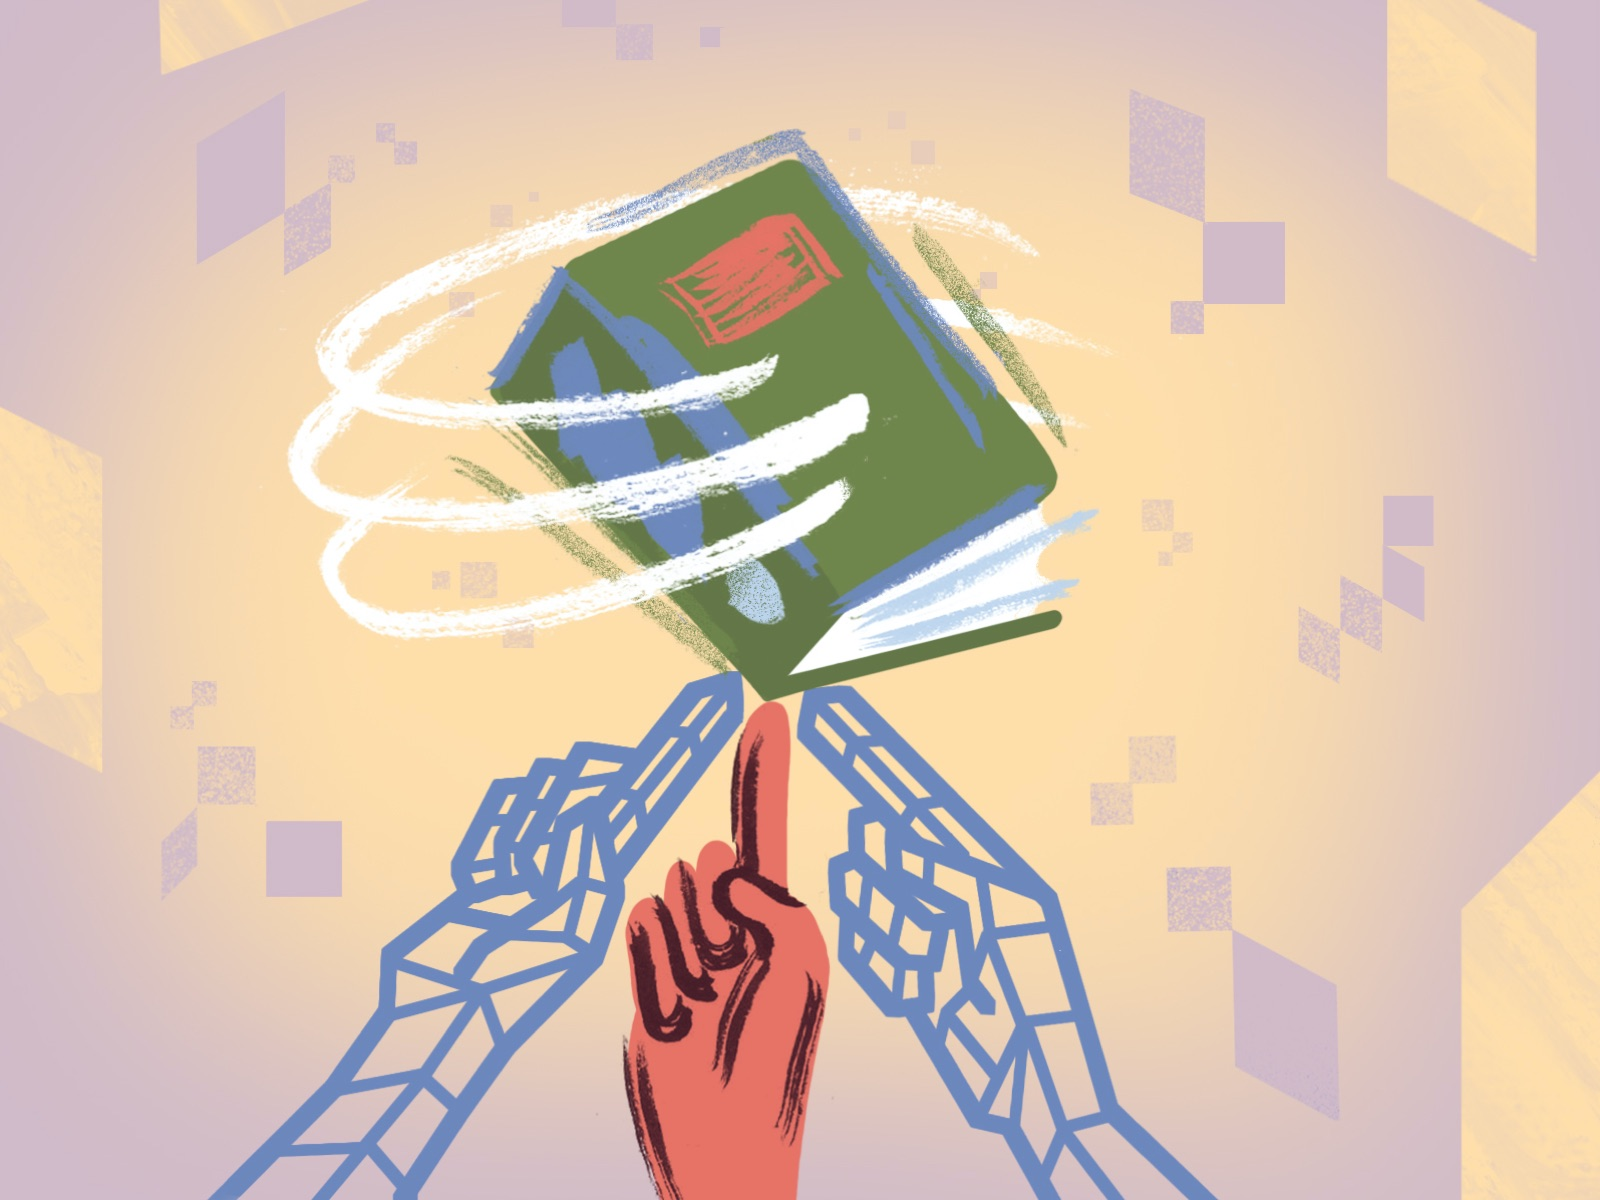 An abstract illustration of three fingers balancing a green book.